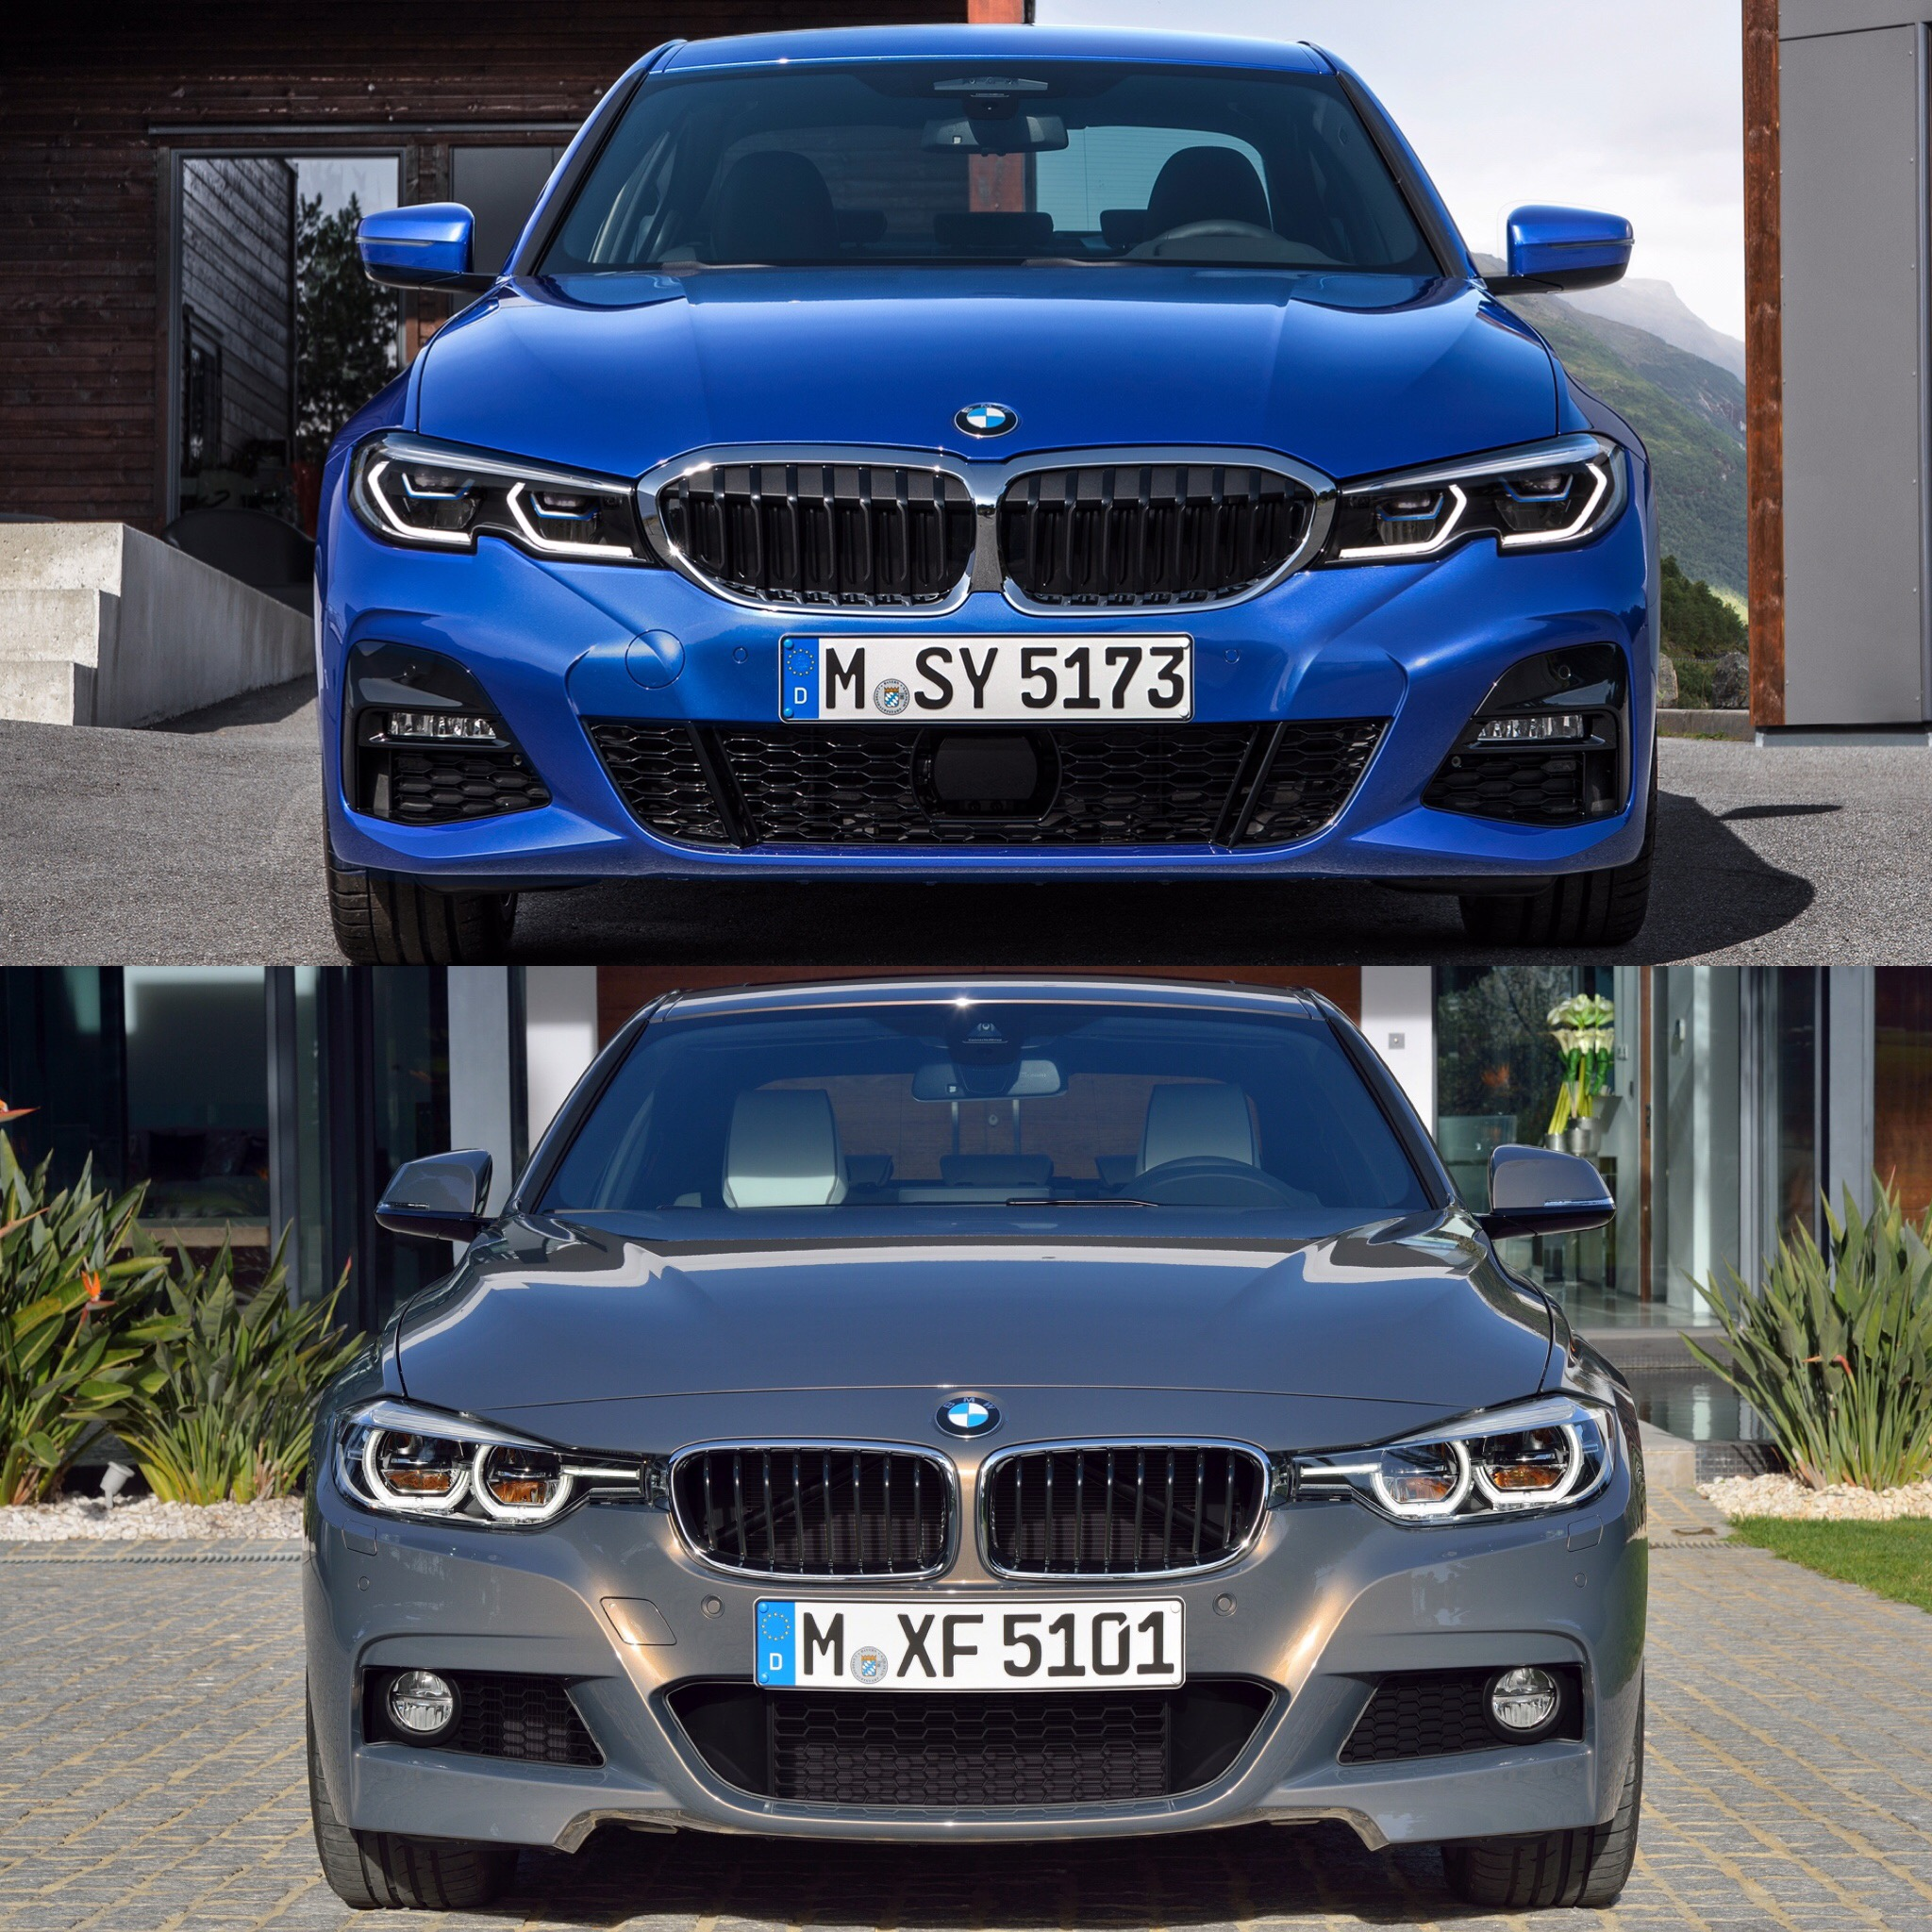 Bmw Sport: Photo Comparison: G20 BMW 3 Series M Sport Vs F30 3 Series